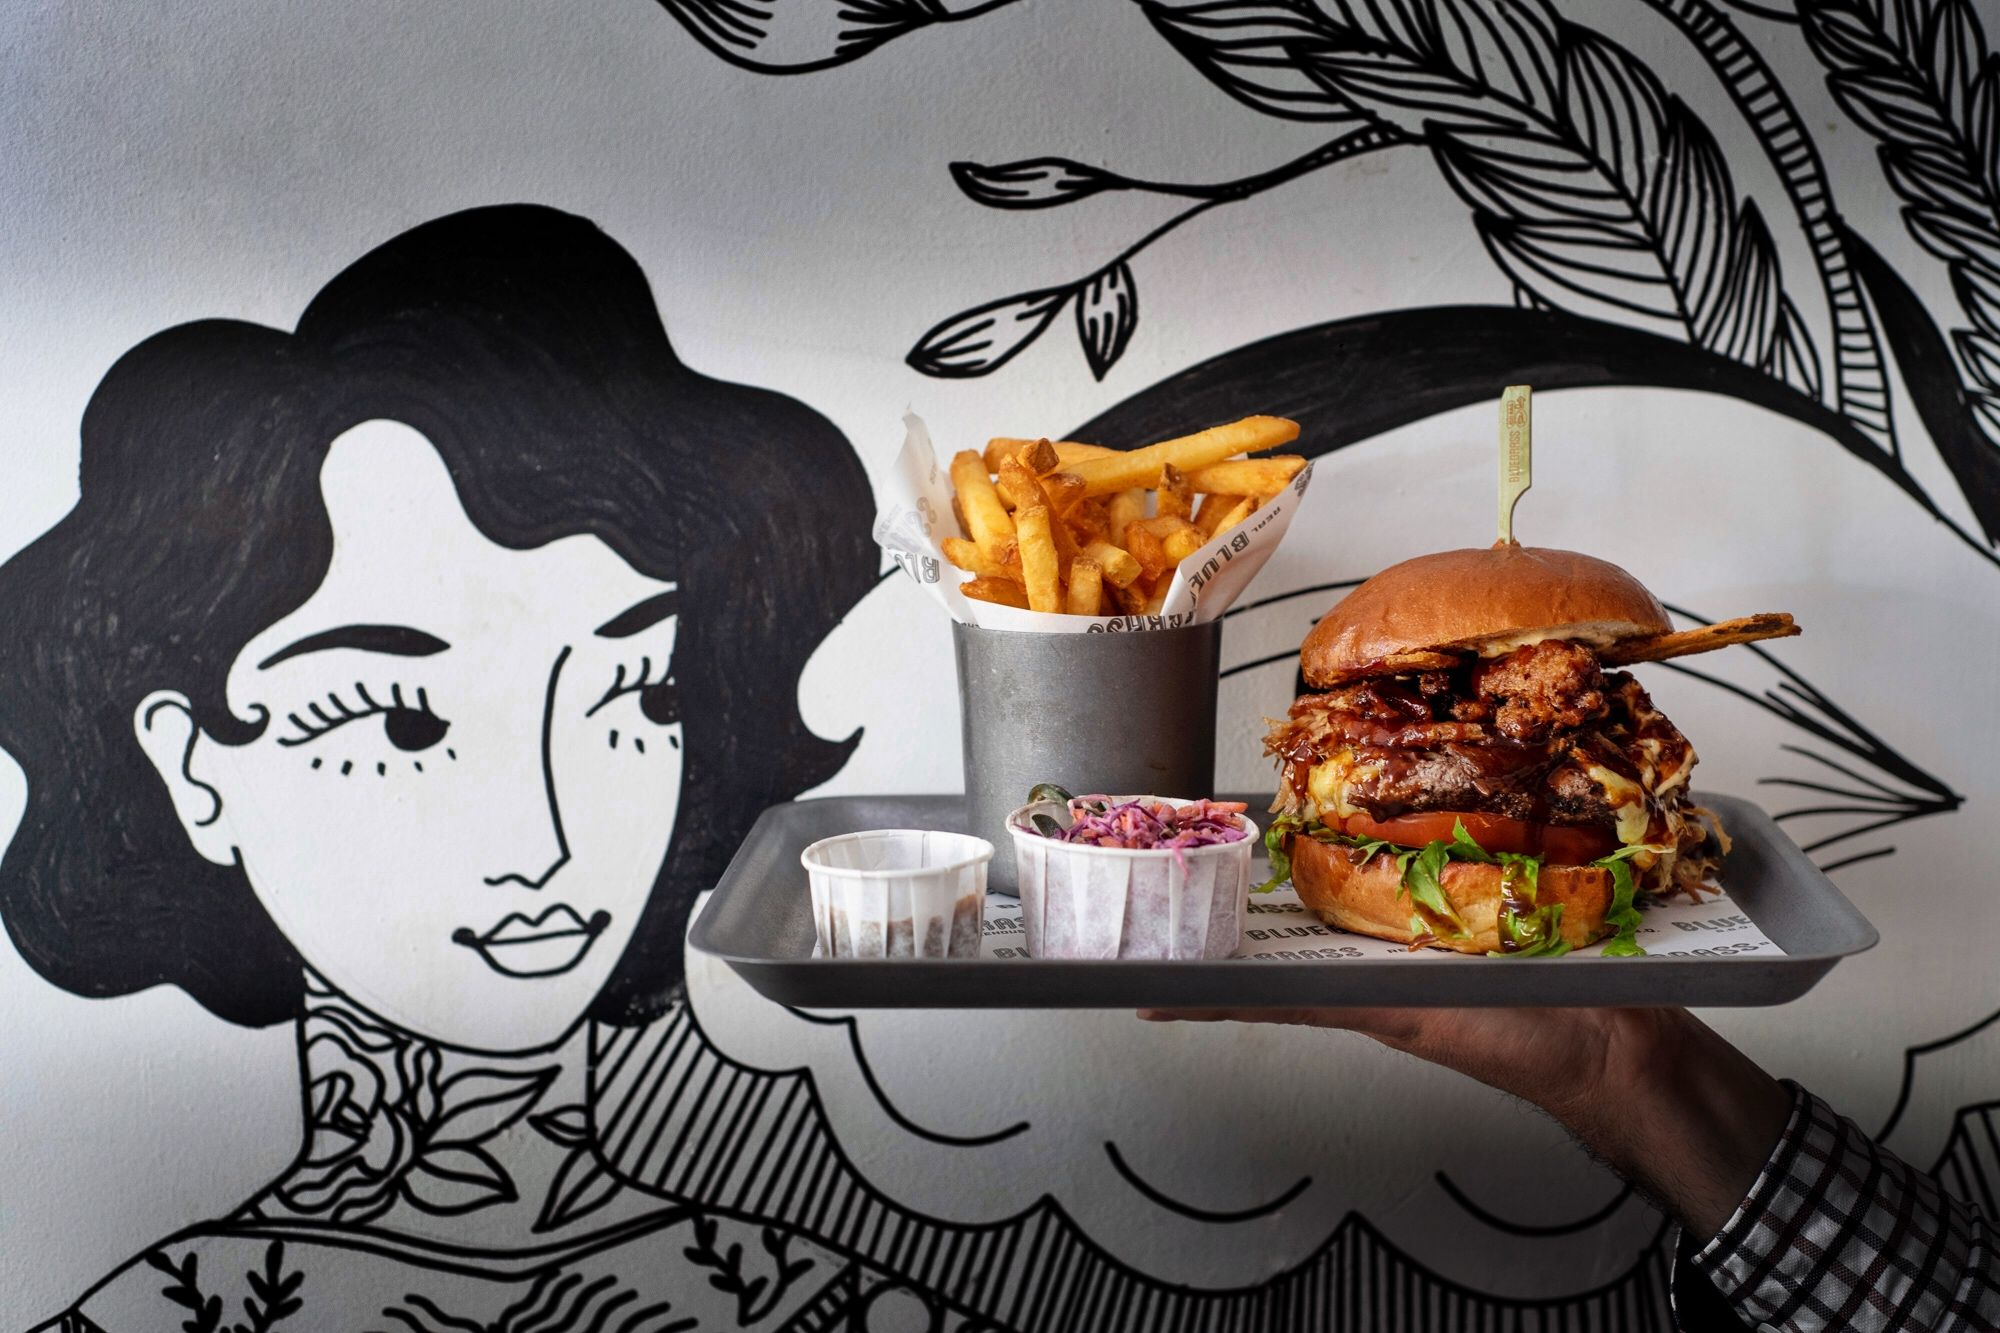 burger and chips on tray with mural in background